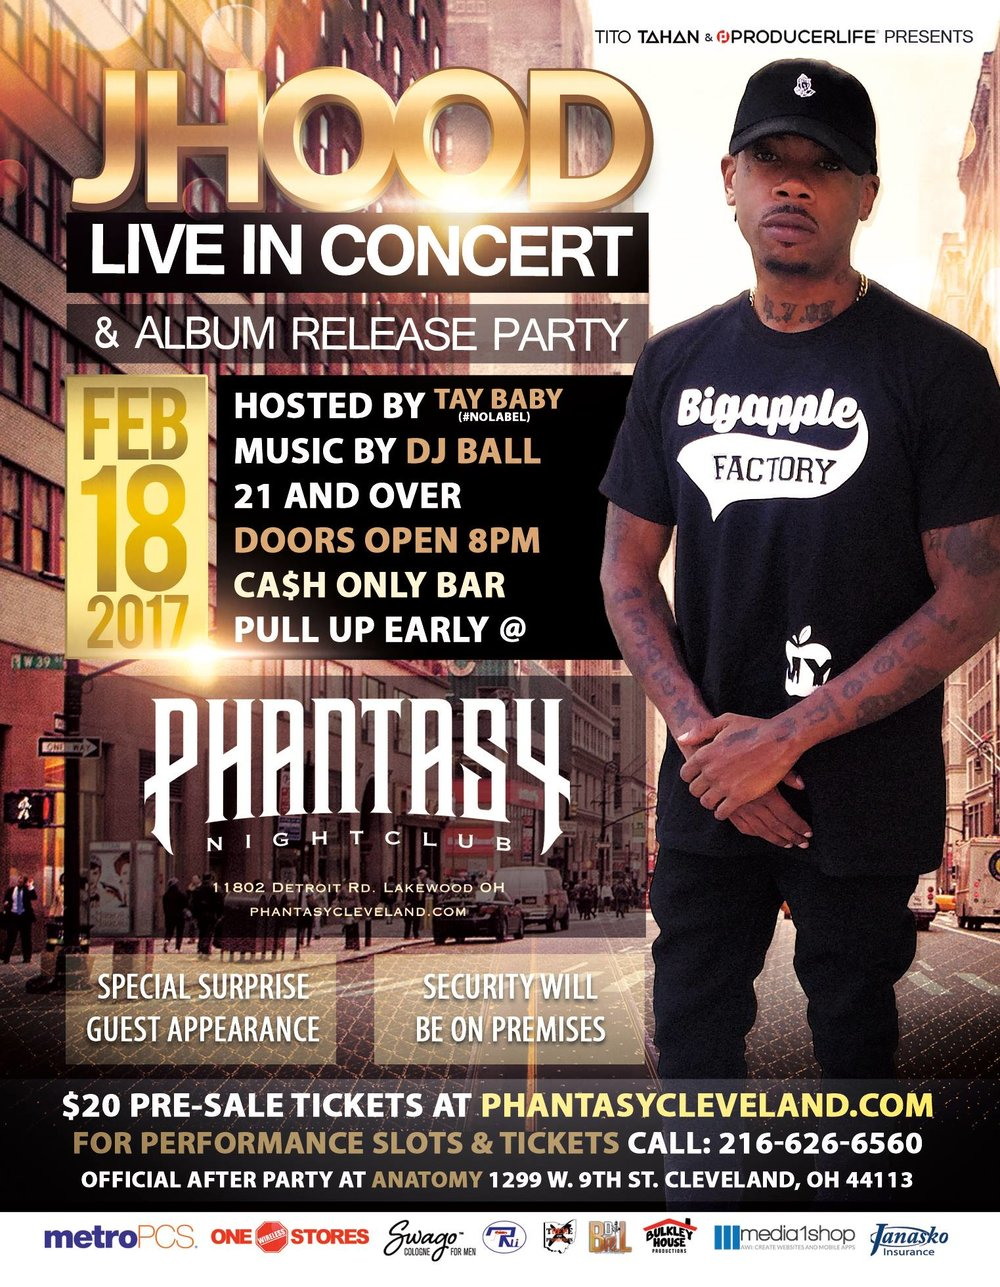 Pull up early and turn up with J Hood as he performs live at Phantasy Nightclub. This event also services as an album release party for J Hood's latest music. Performance Slots Available / Need tickets in person? Call 216-626-6520. Official After Party at Anatomy. Call 216-626-6520 for a meet-and-greet.